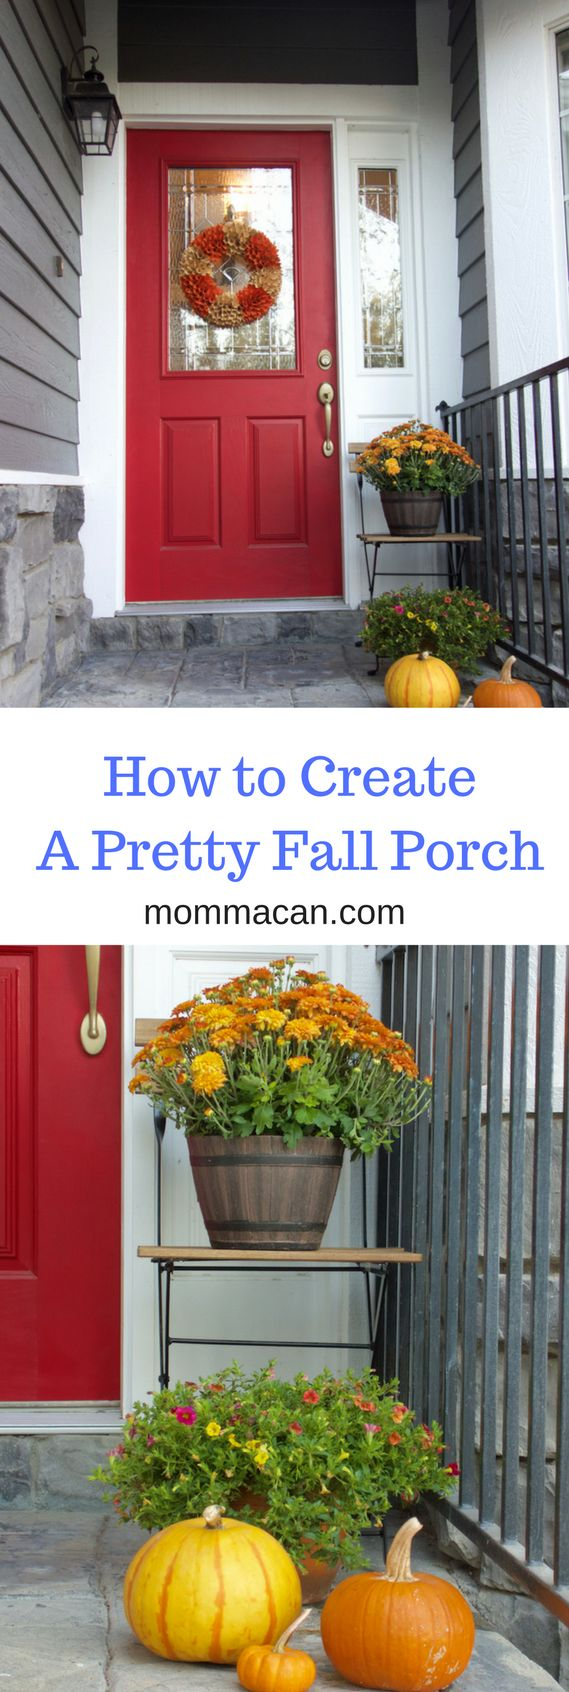 Creating a Fall Porch is simple and a not a huge expense using what you have on hand and adding colorful flowers and pumpkins. Find out how on Mommacan.com